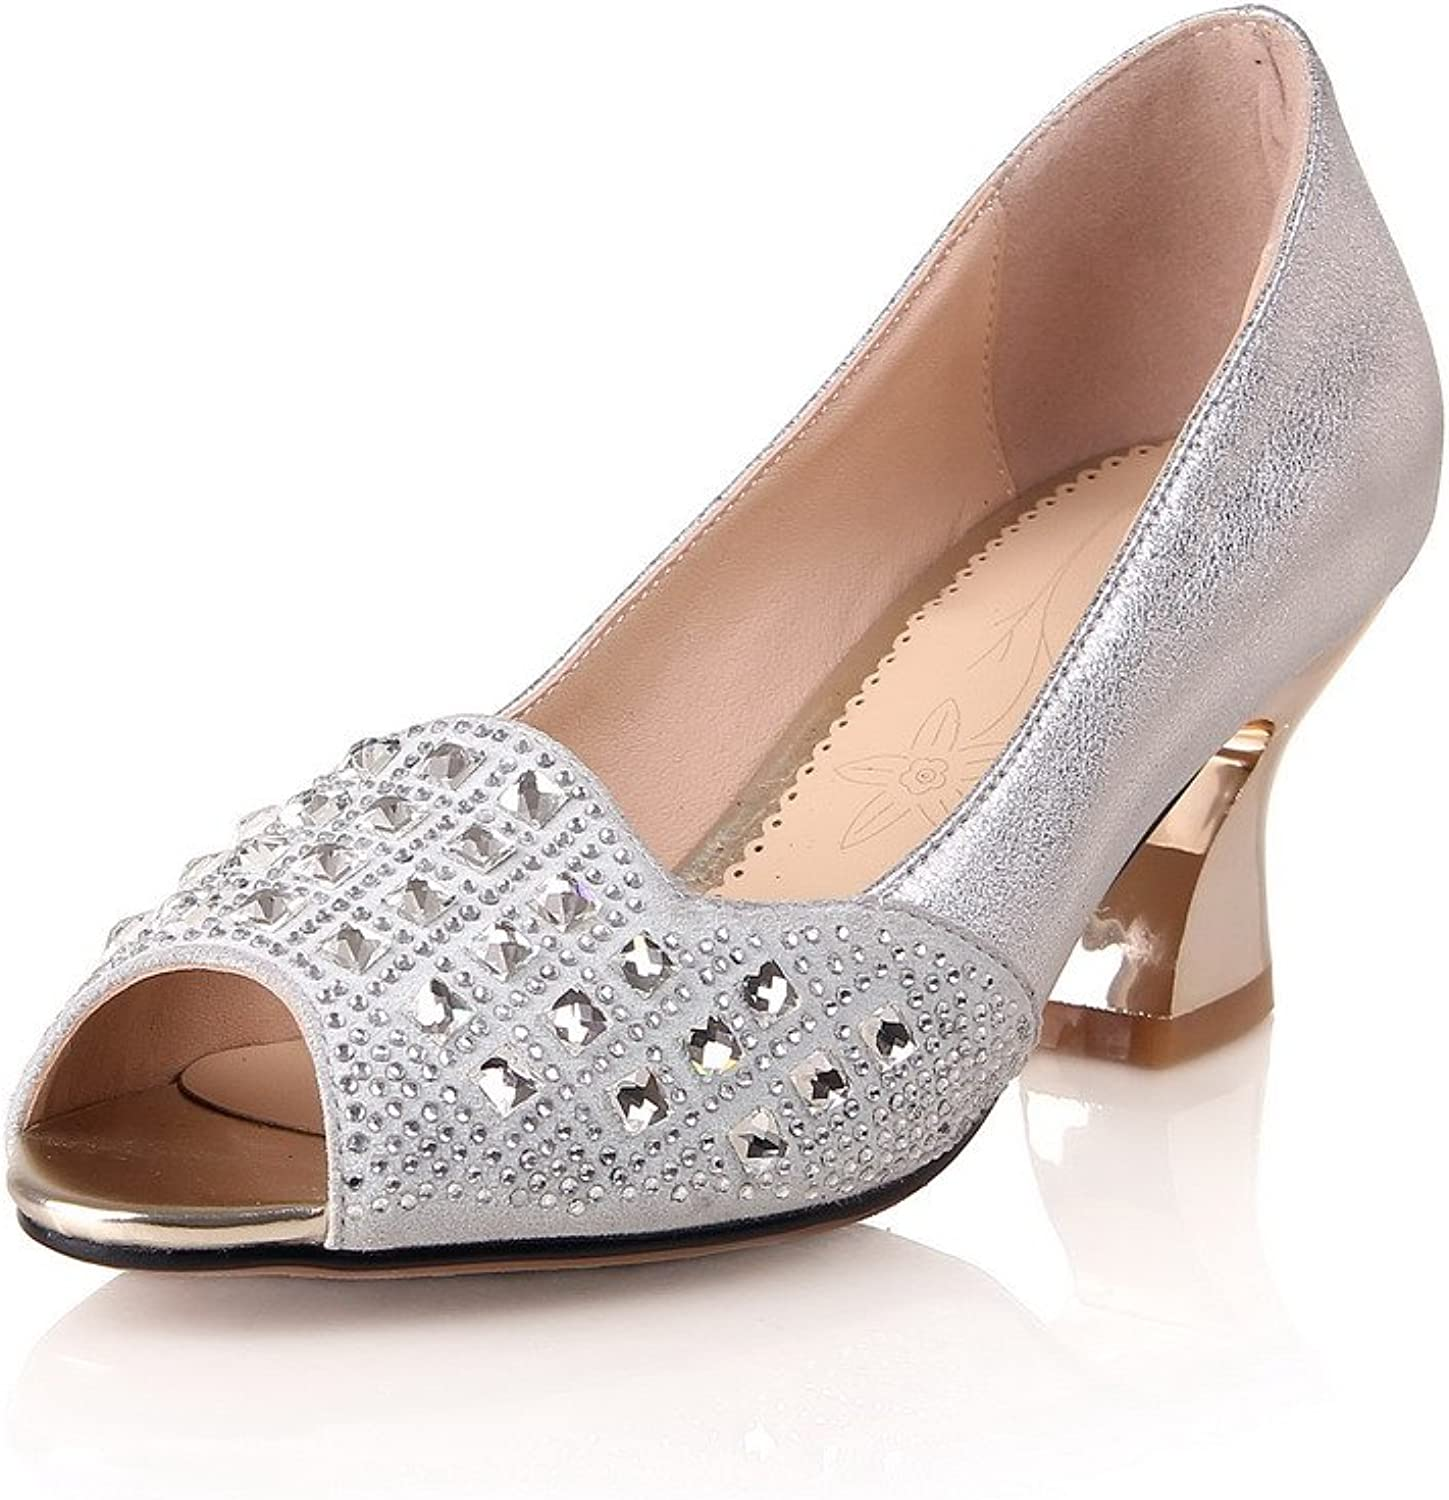 AllhqFashion Women's Peep Toe Cow Leather Kitten Heels Solid Sandals with Studded Rhinestones